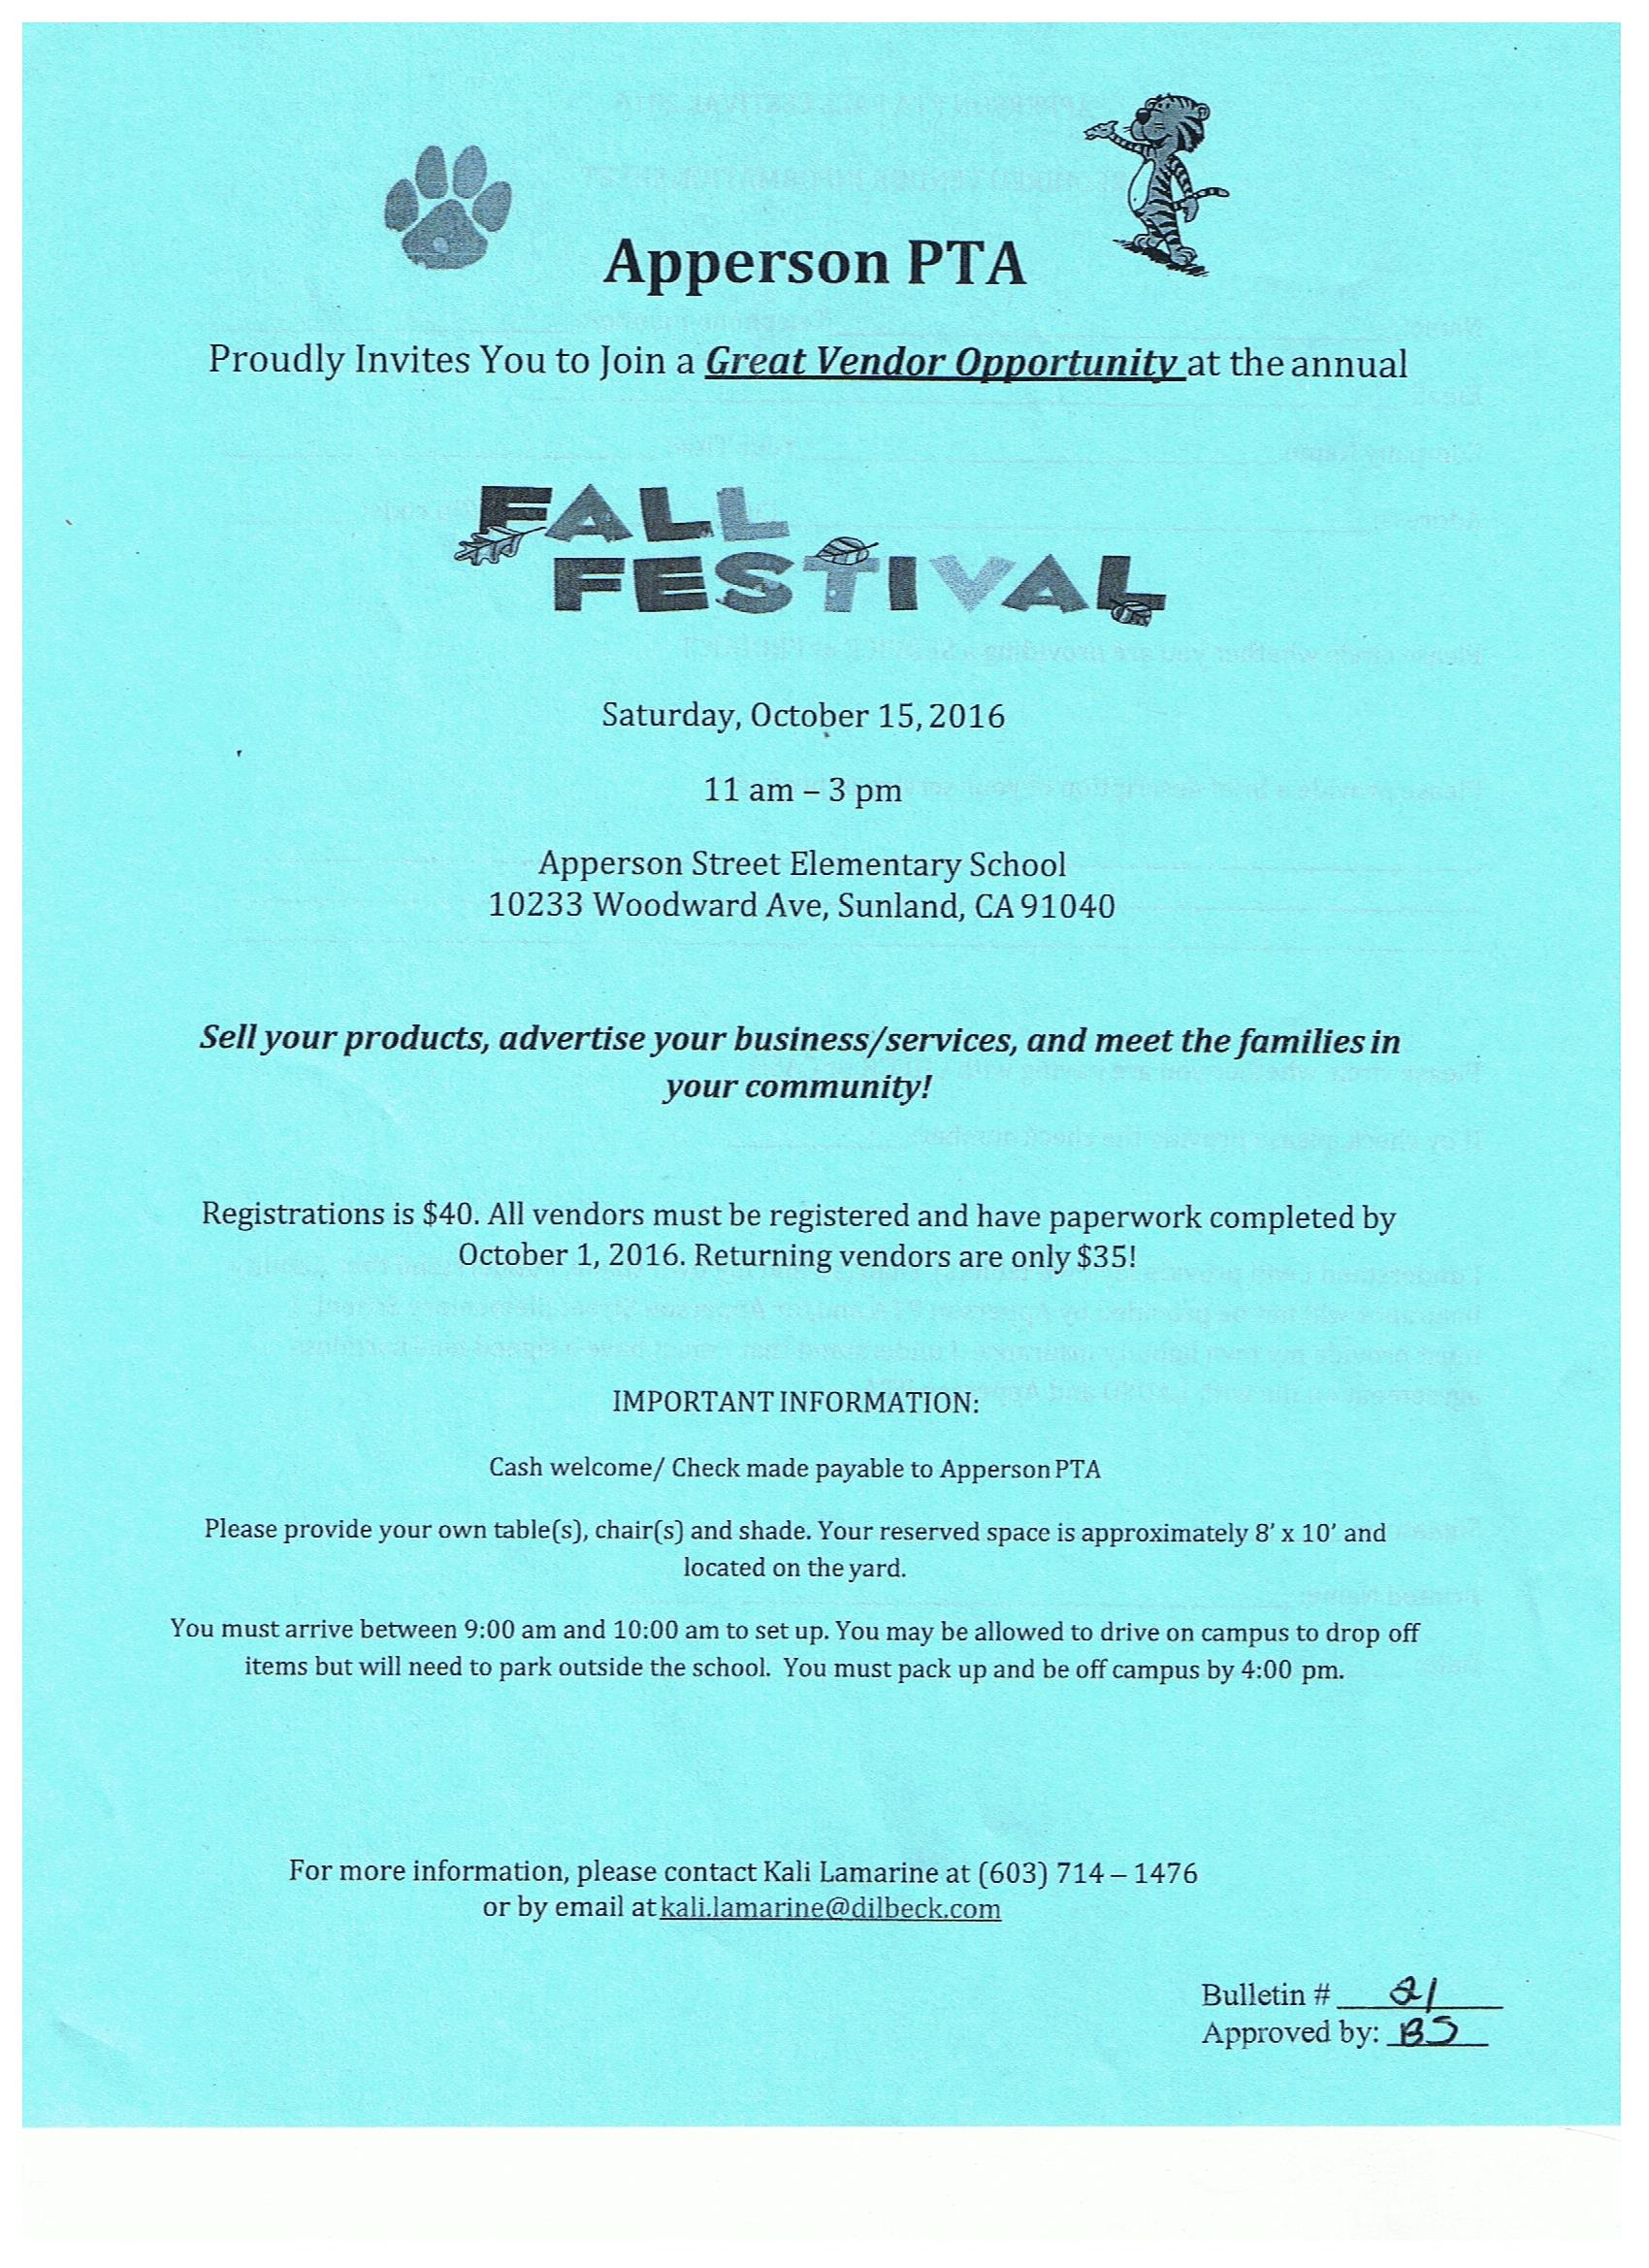 fall-festival-vendor-flyer